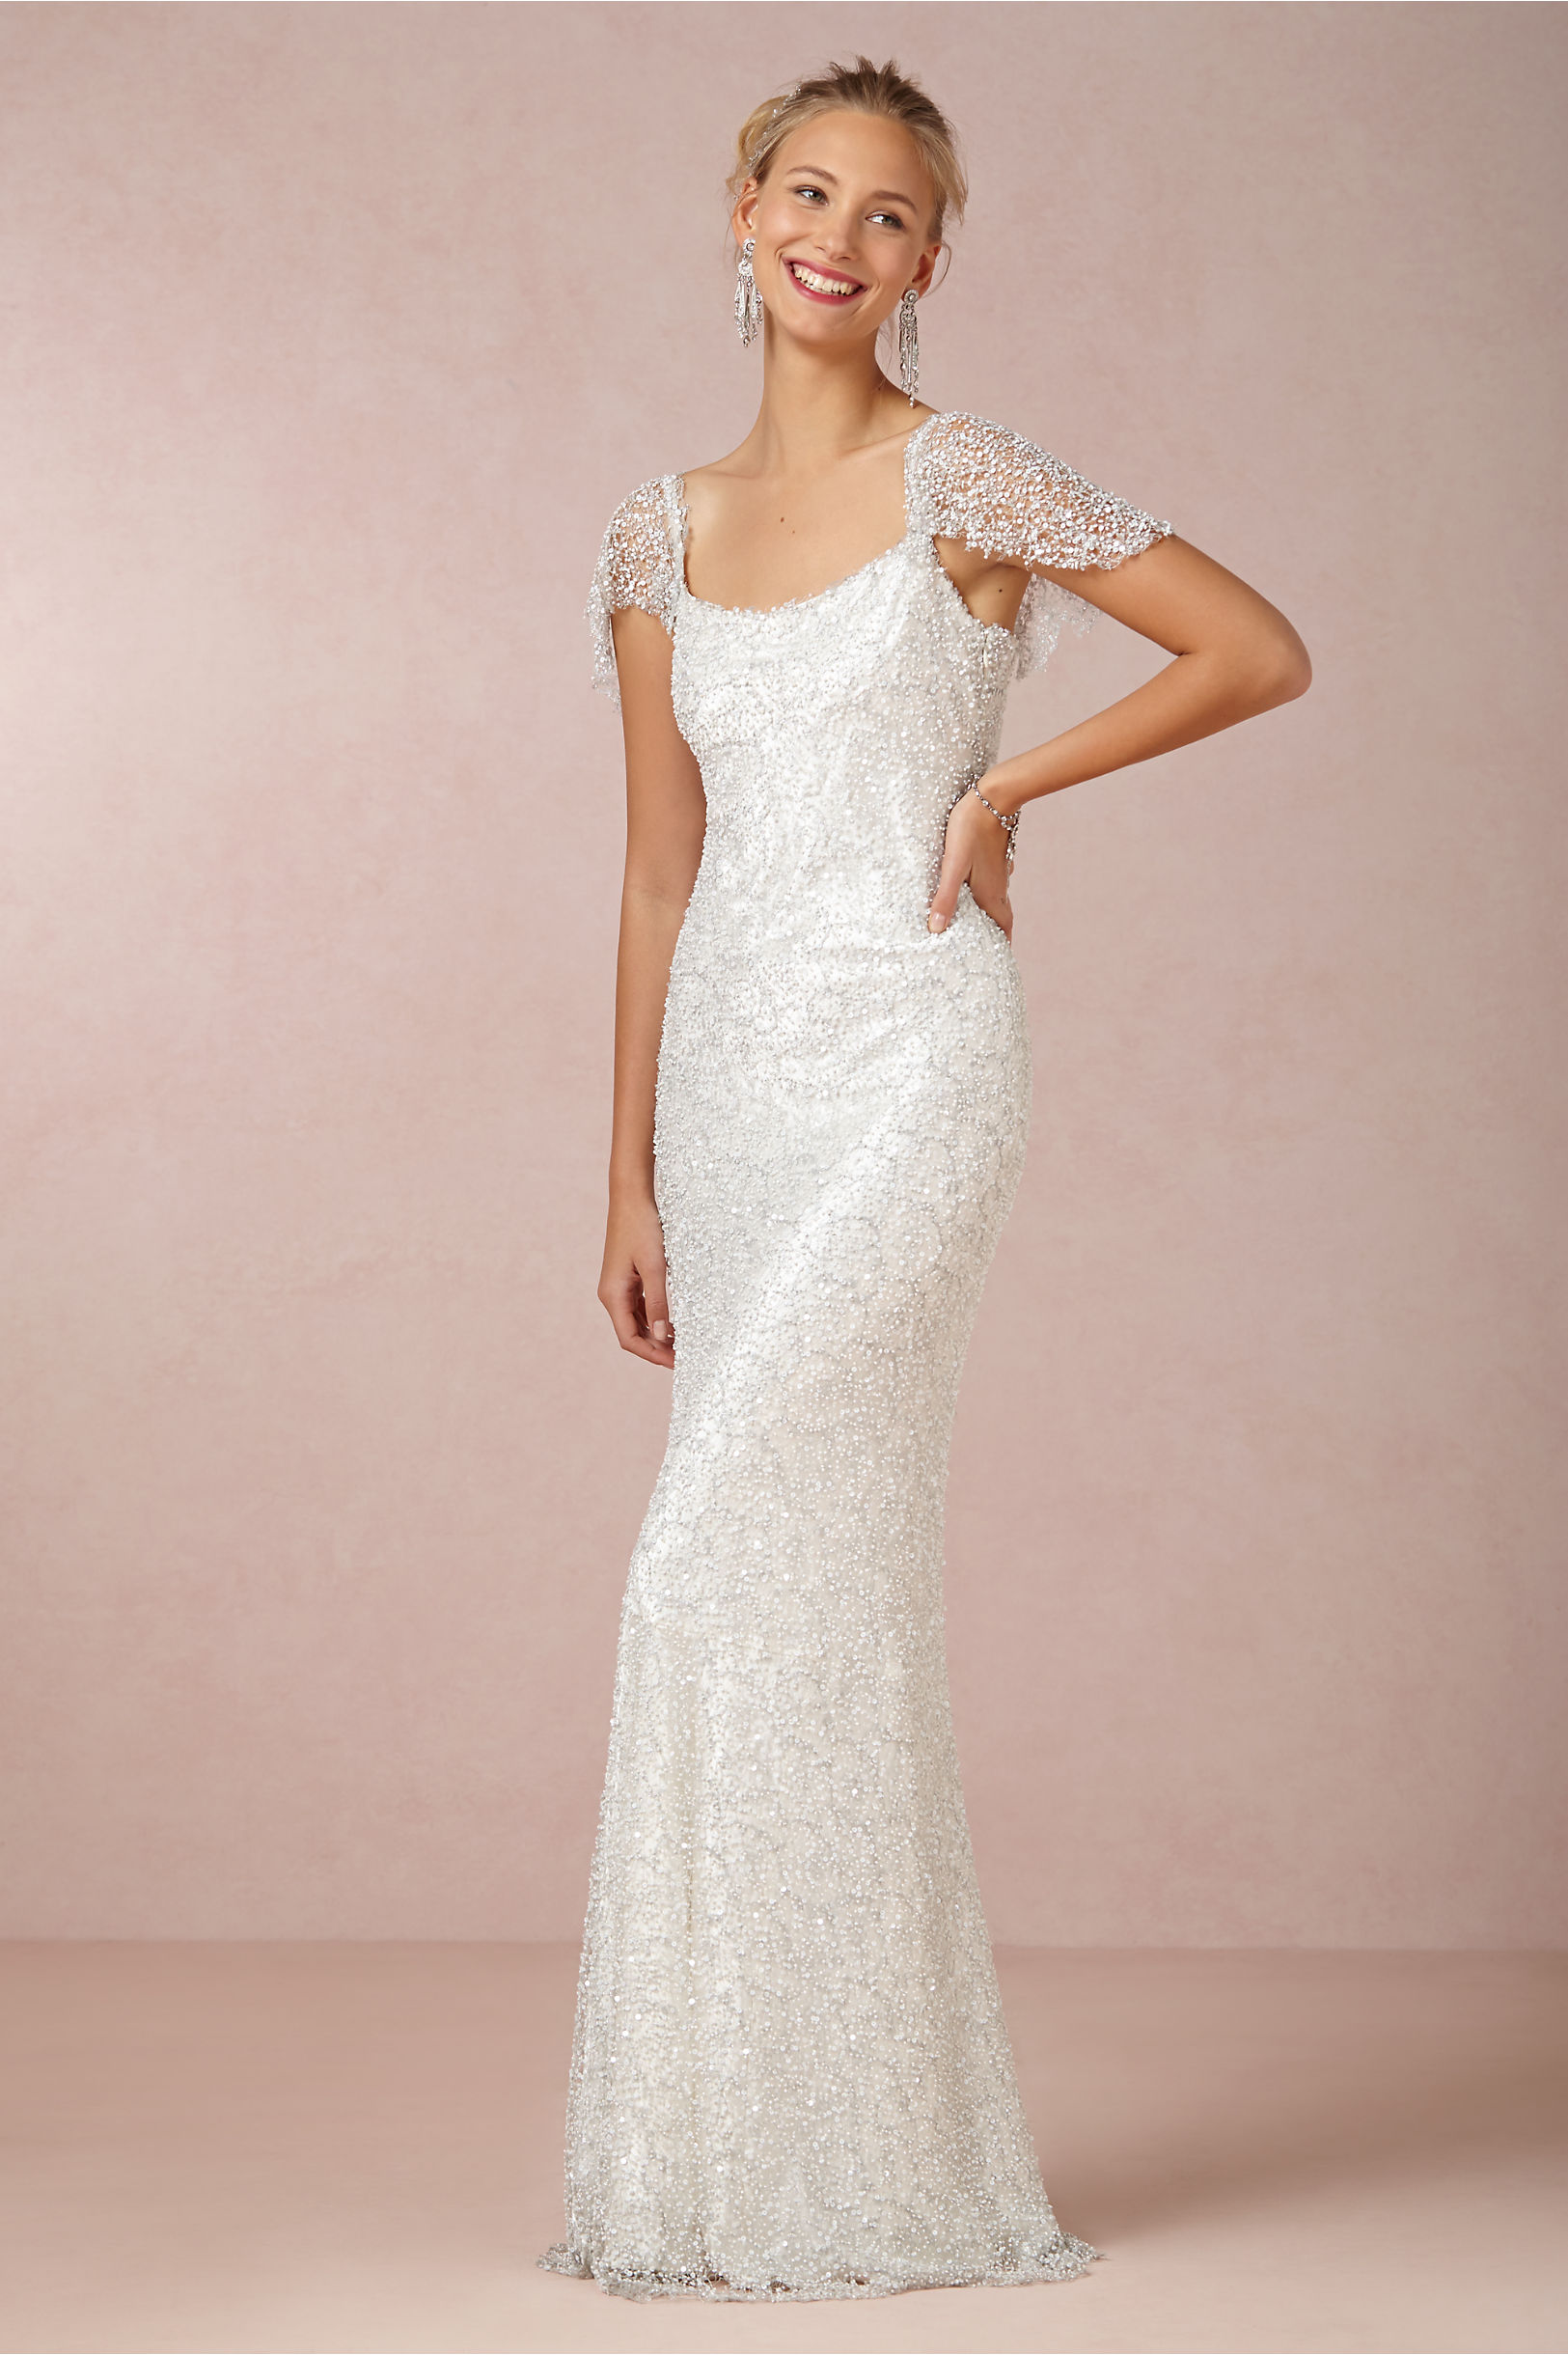 Snowflake Gown In Bride